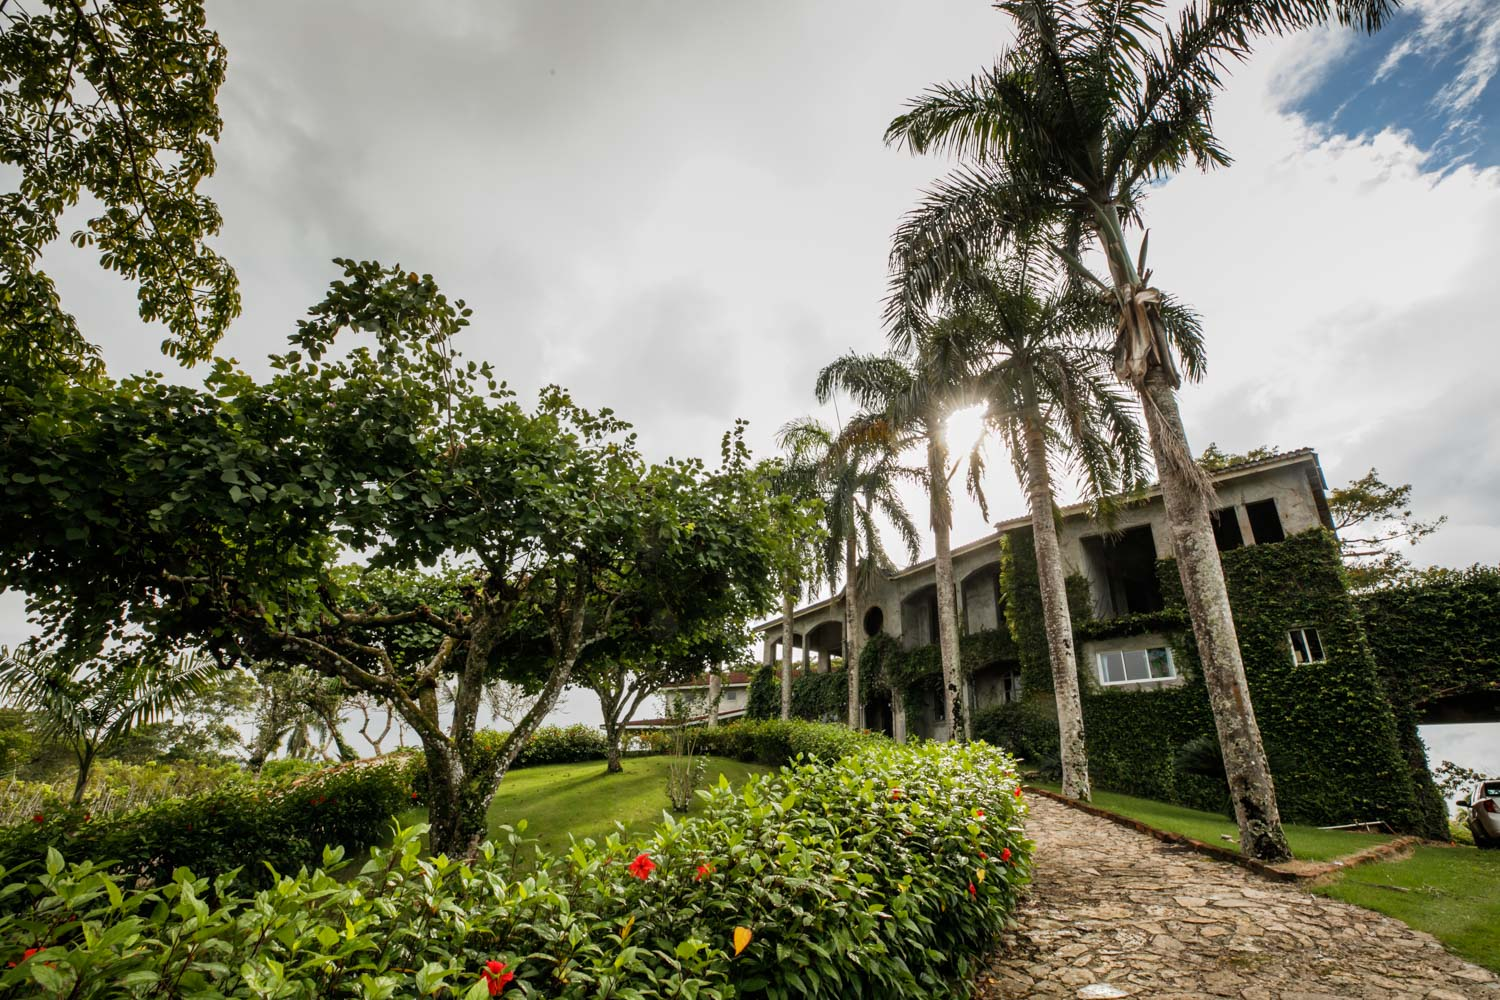 Exterior of wedding ceremony building at Castle Club in Cabarete Dominican Republic